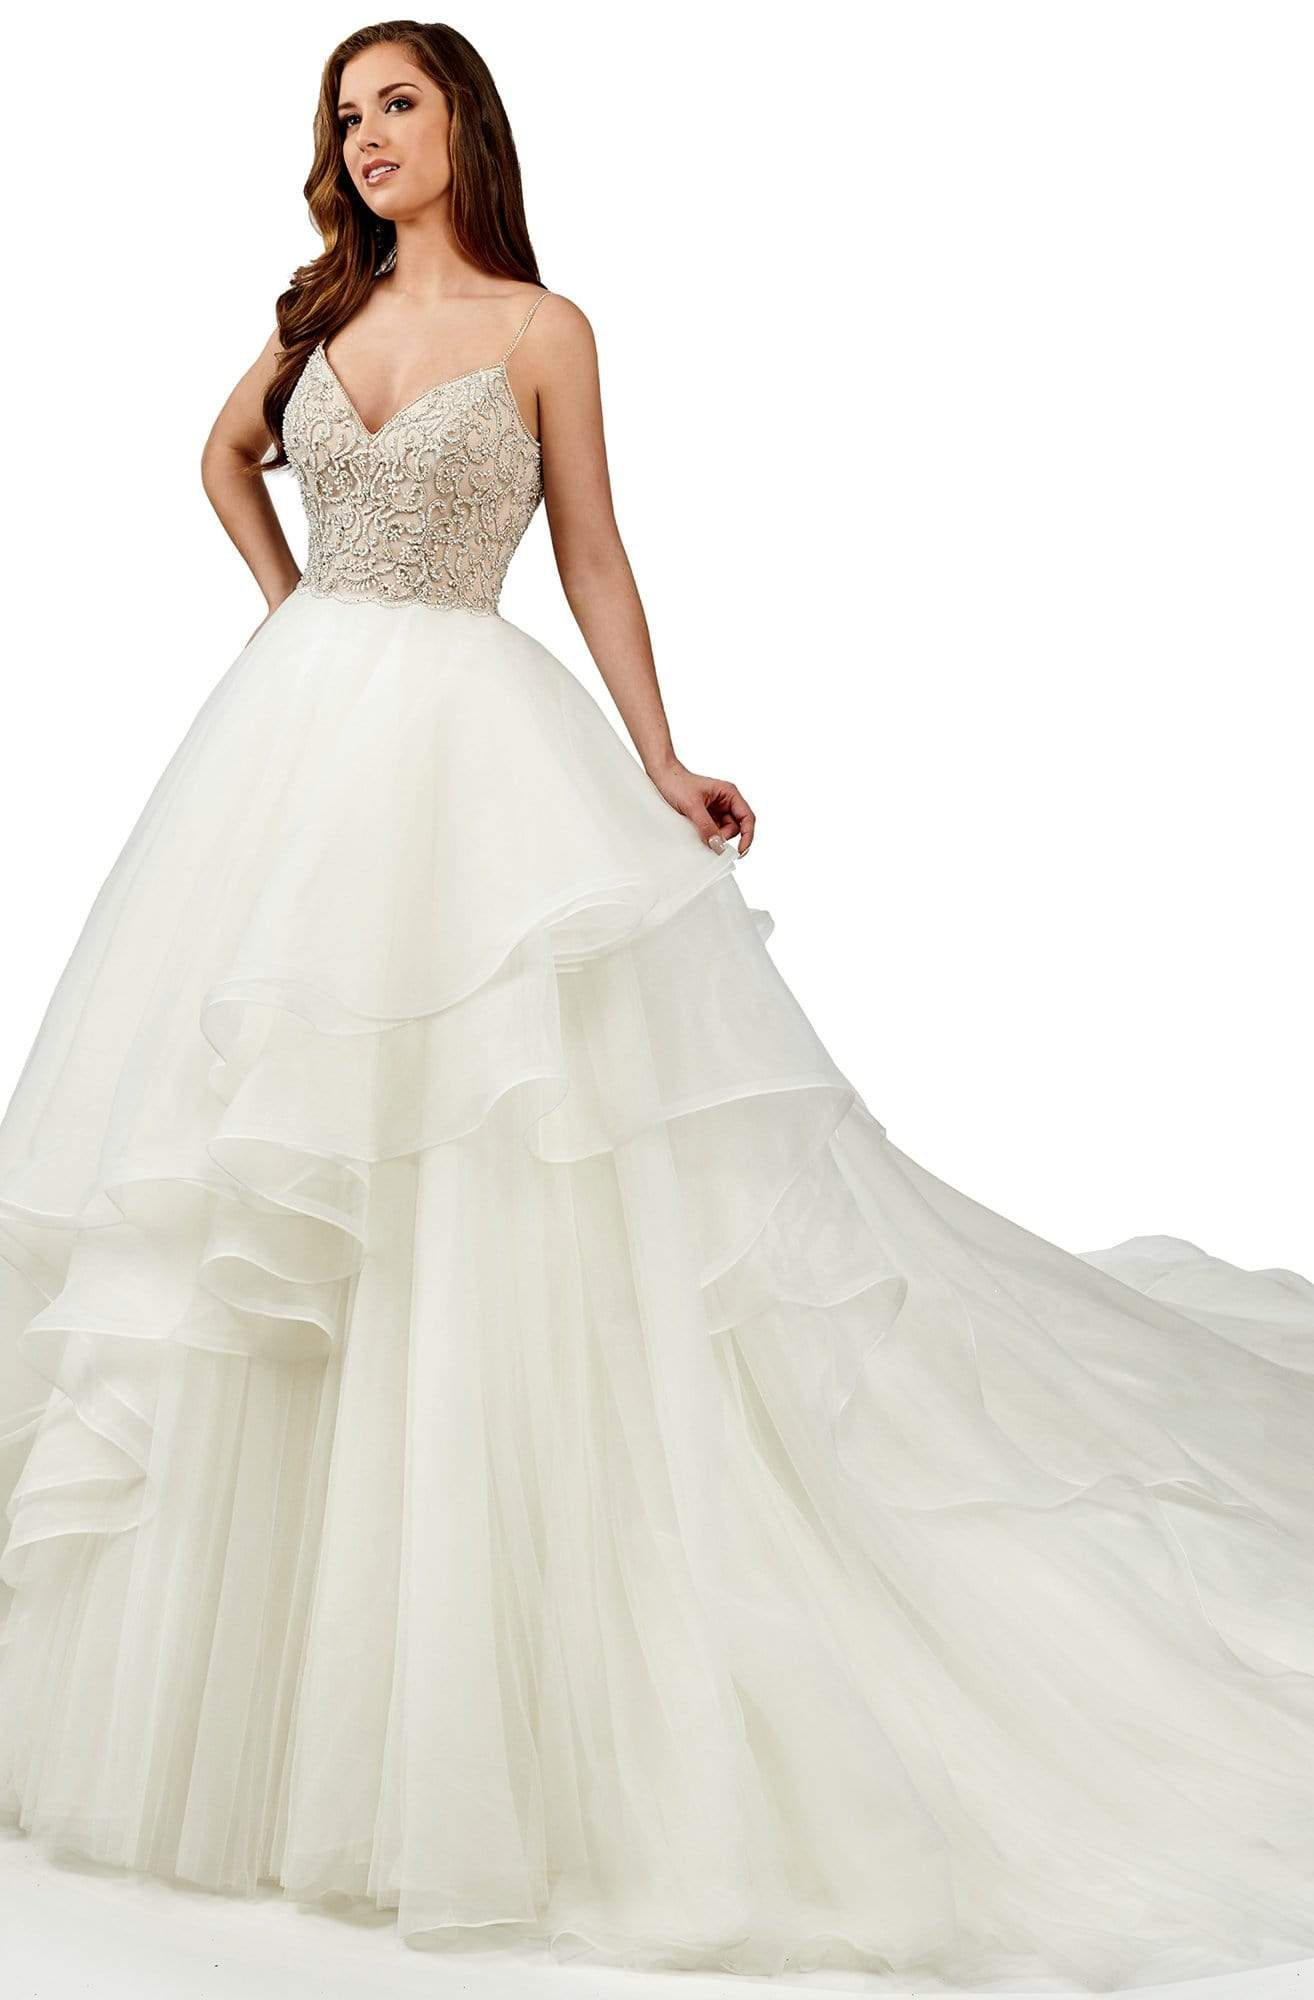 Lo'Adoro Bridal By Rachel Allan - M747 Crystal Beaded Sweetheart Ballgown from Rachel Allan